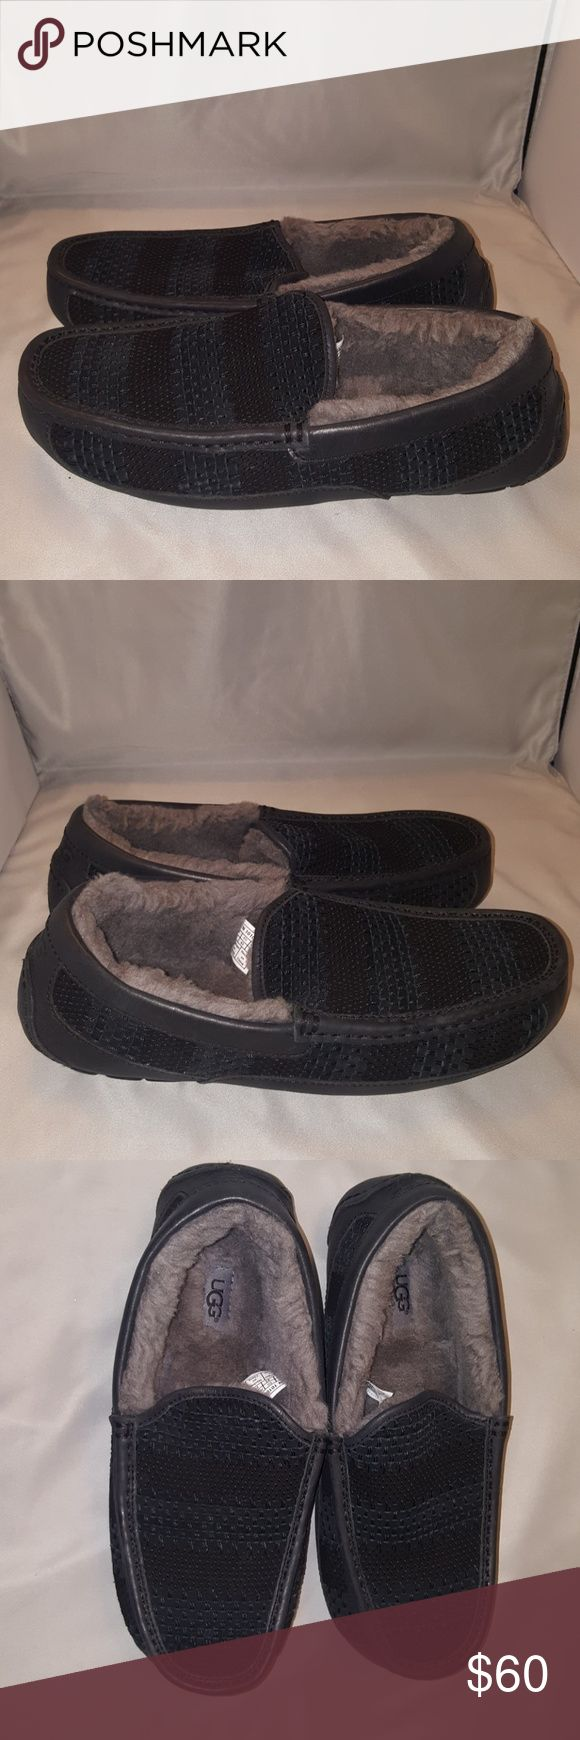 Men's UGG Ascot Weave Slippers Size-10 Black Excellent pre owned condition UGG Shoes Loafers & Slip-Ons